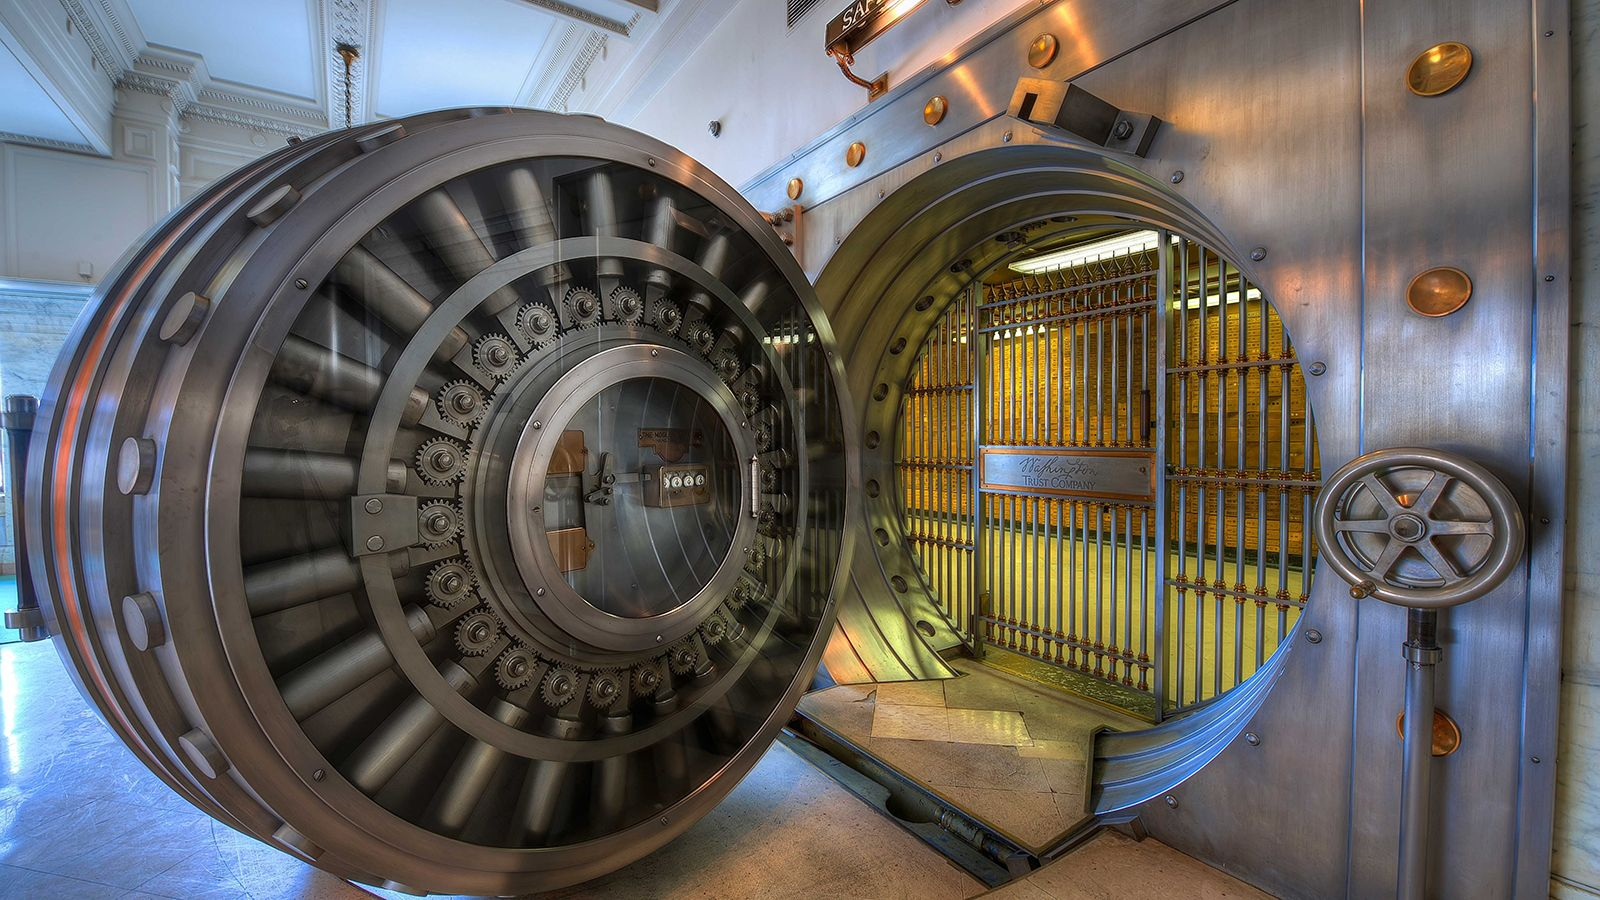 31 Fascinating Photos From Our Fascinating World Vault Doors